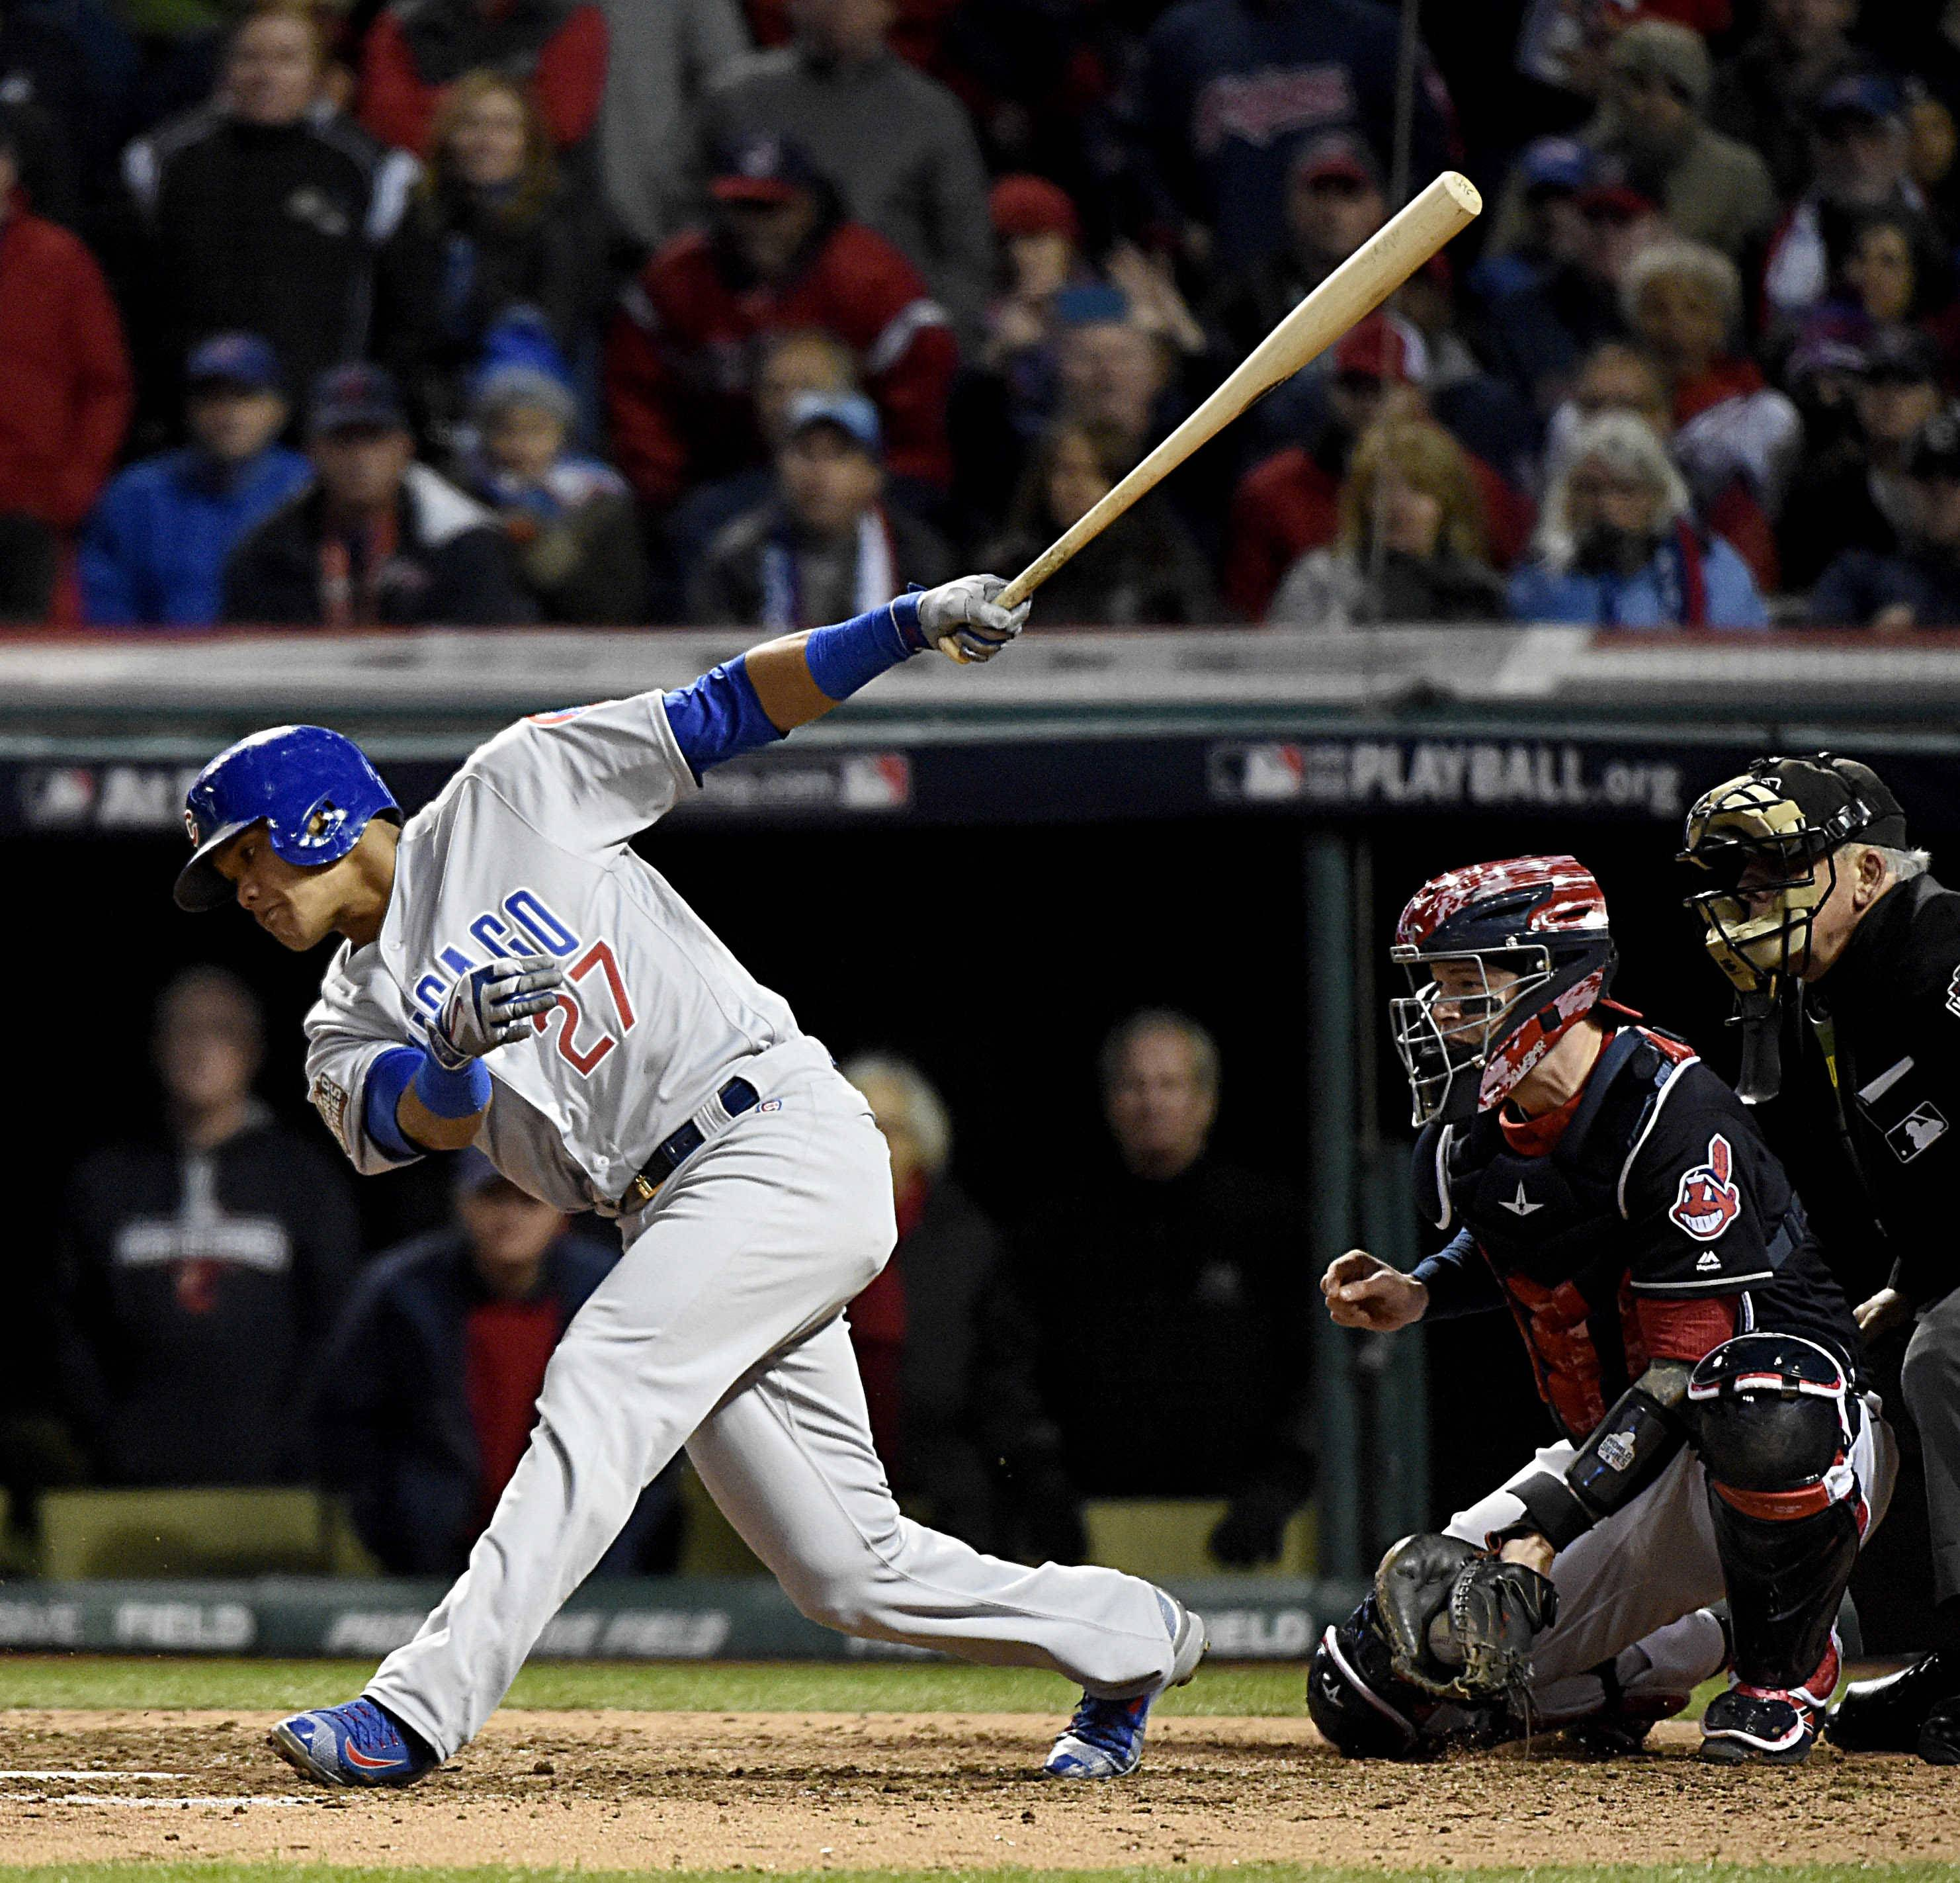 Chicago Cubs shortstop Addison Russell (27) comes up empty on a swing for strike three in the seventh inning during Game 1 of the Major League Baseball World Series between the Cleveland Indians and the Chicago Cubs Tuesday, Oct. 25, 2016, in Cleveland.